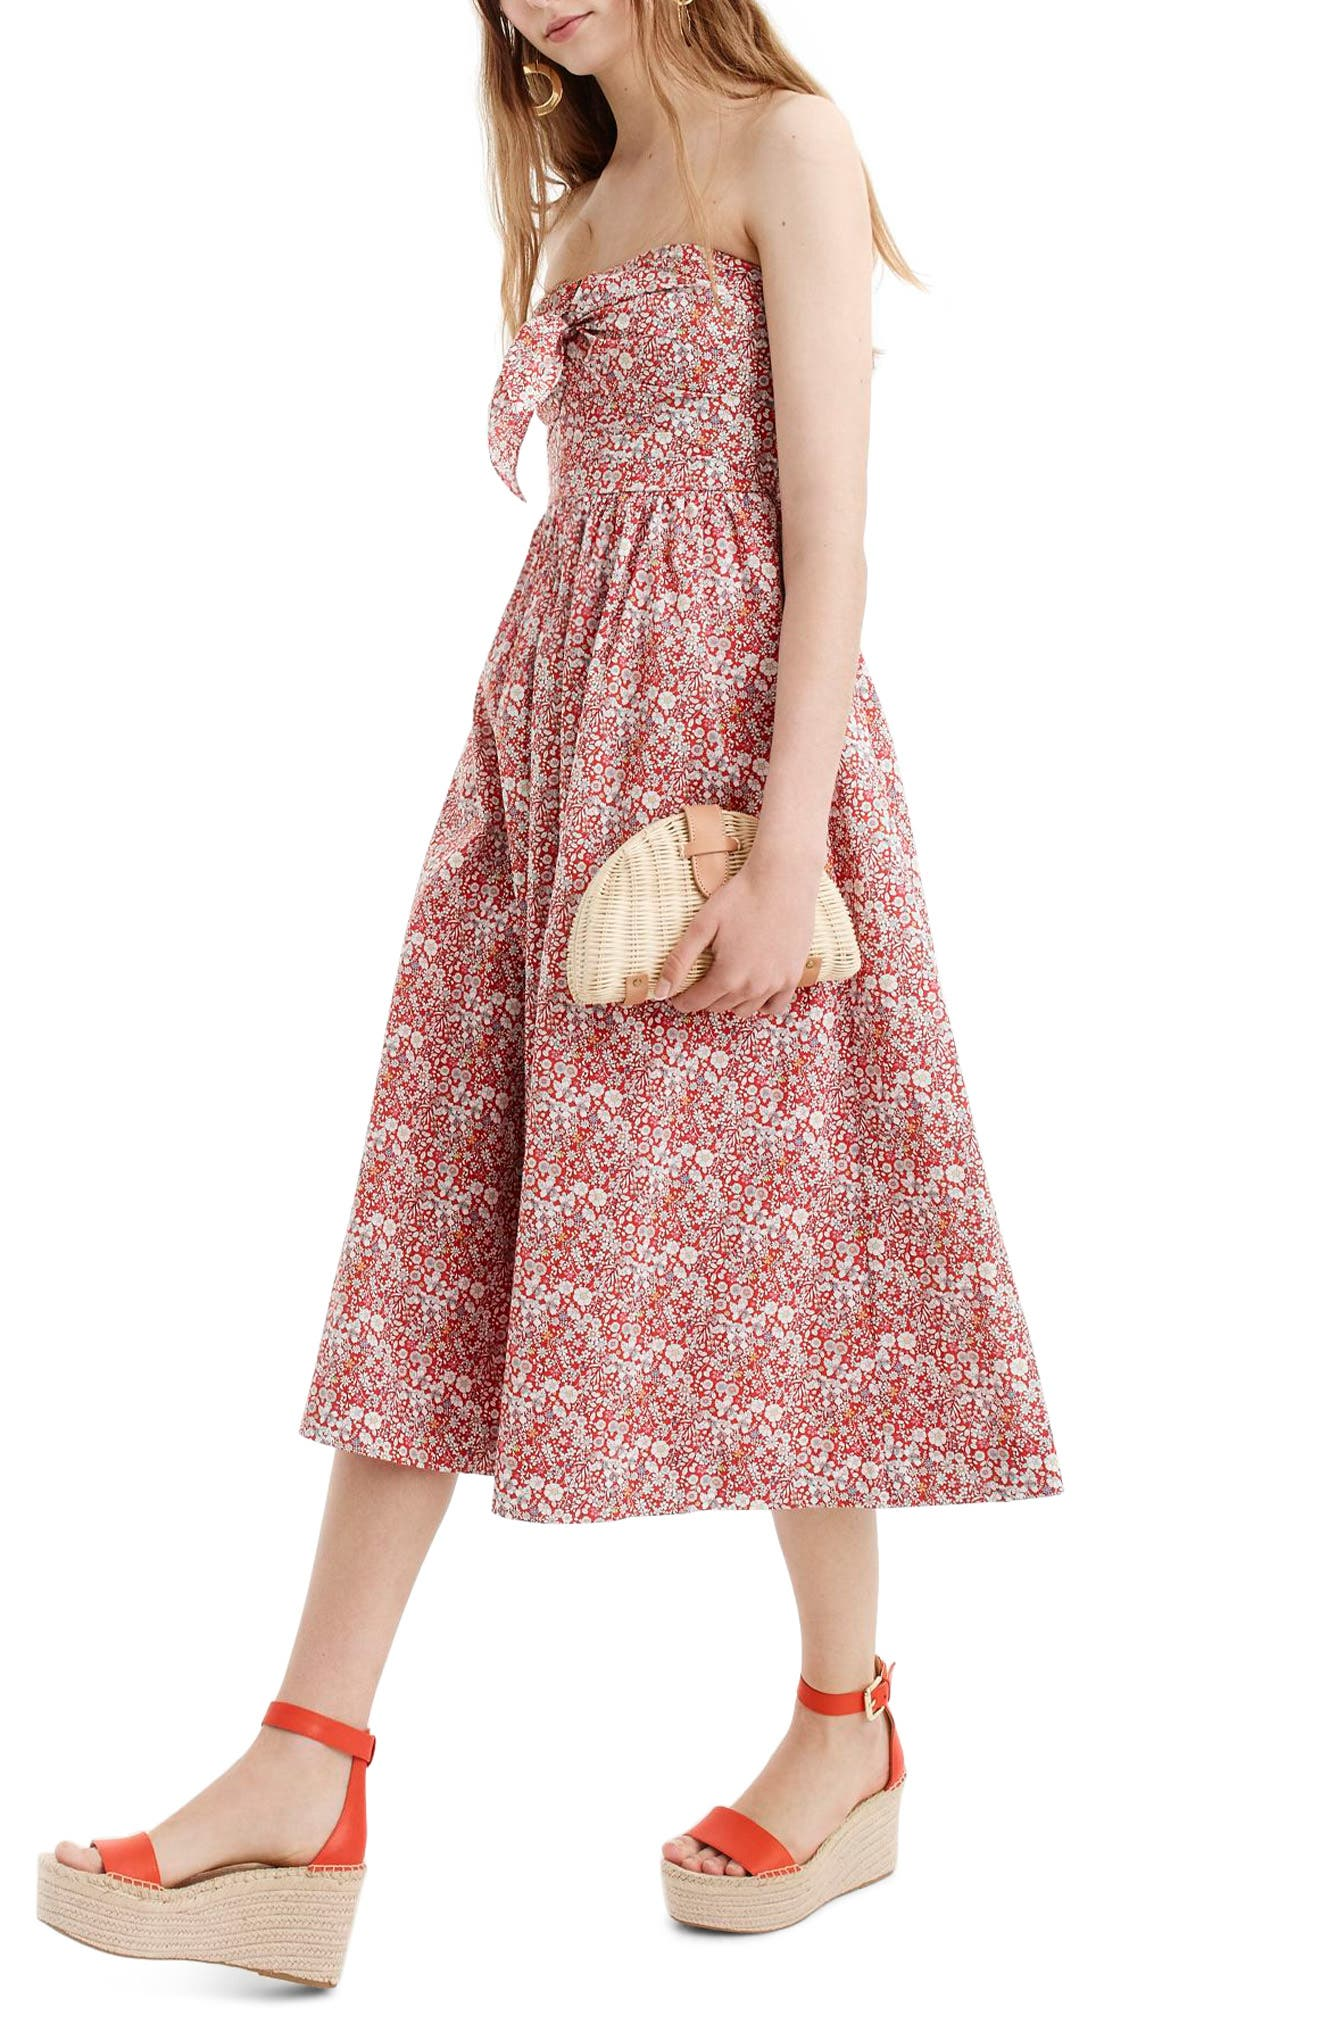 Liberty Tie Front Strapless Dress,                         Main,                         color, Cherry Multi